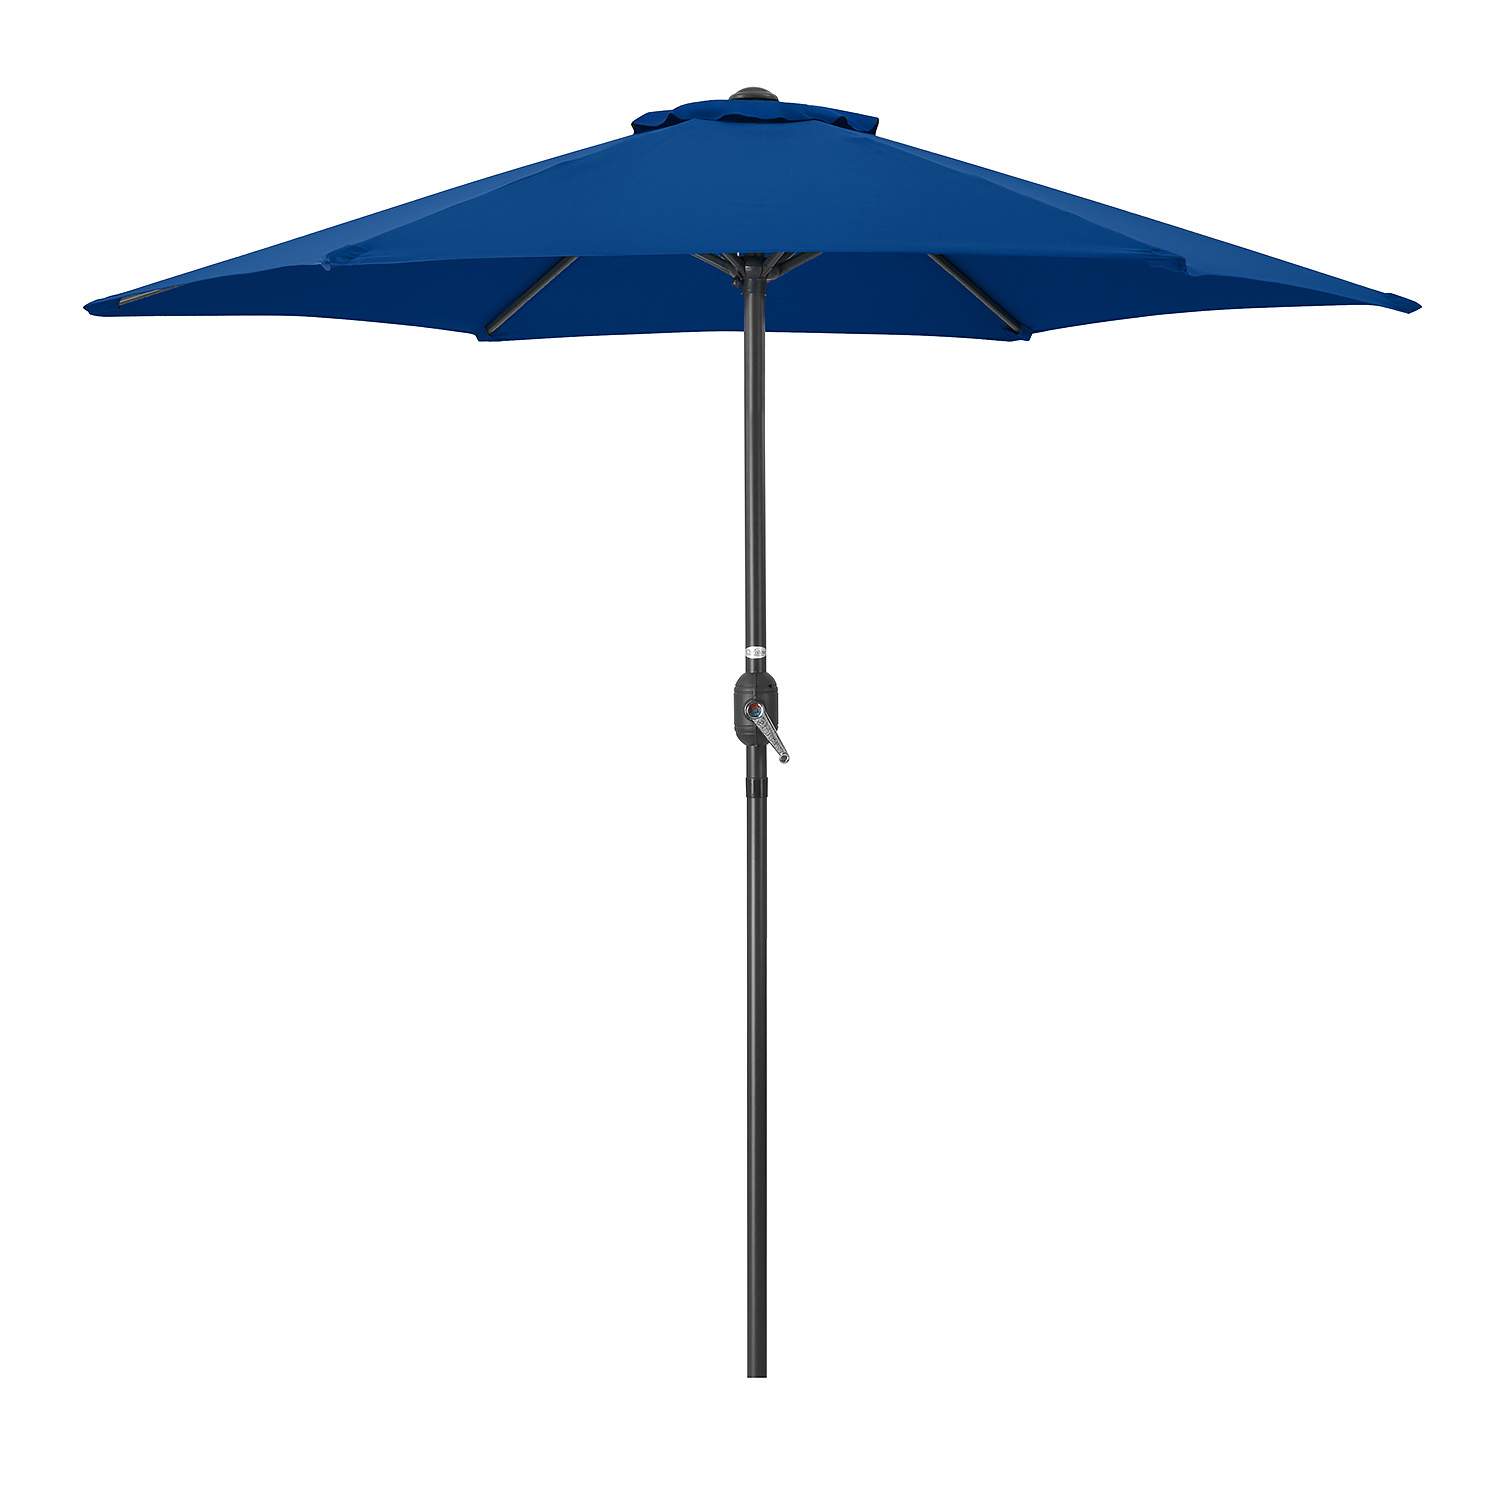 Image of 2.4m Parasol With Crank - Navy